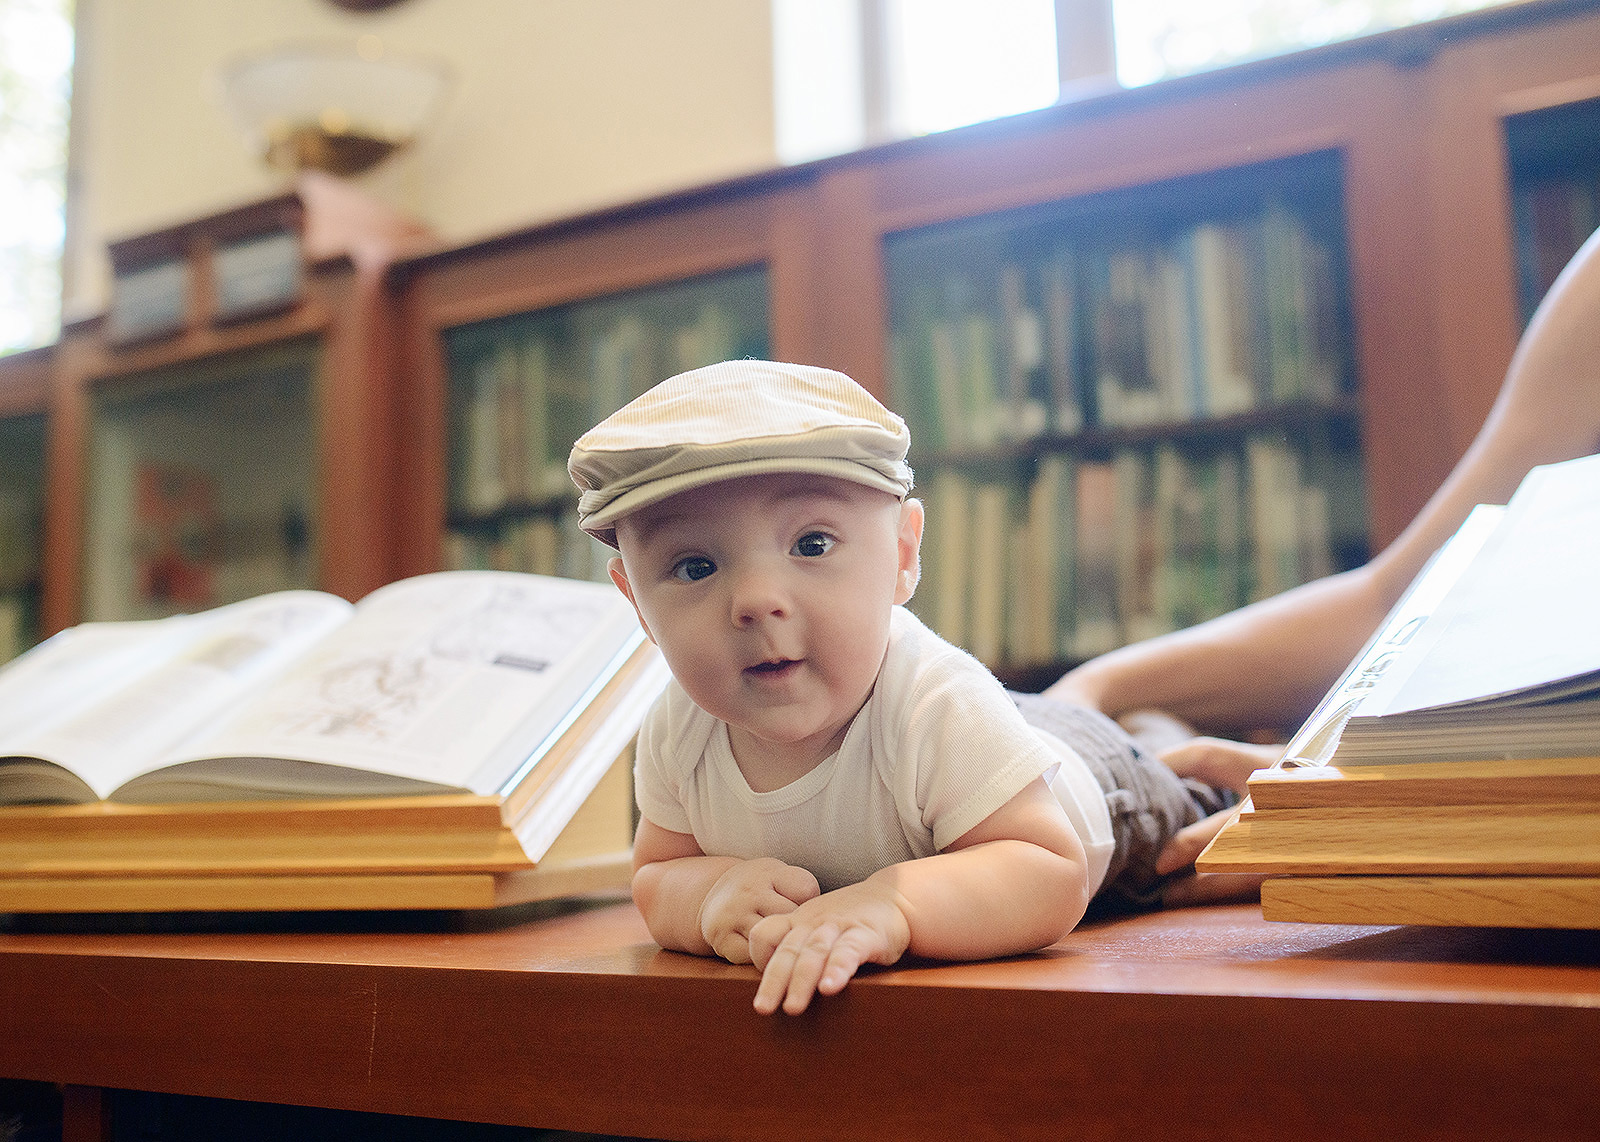 Baby In Between Books in Sacramento Downtown Central Library